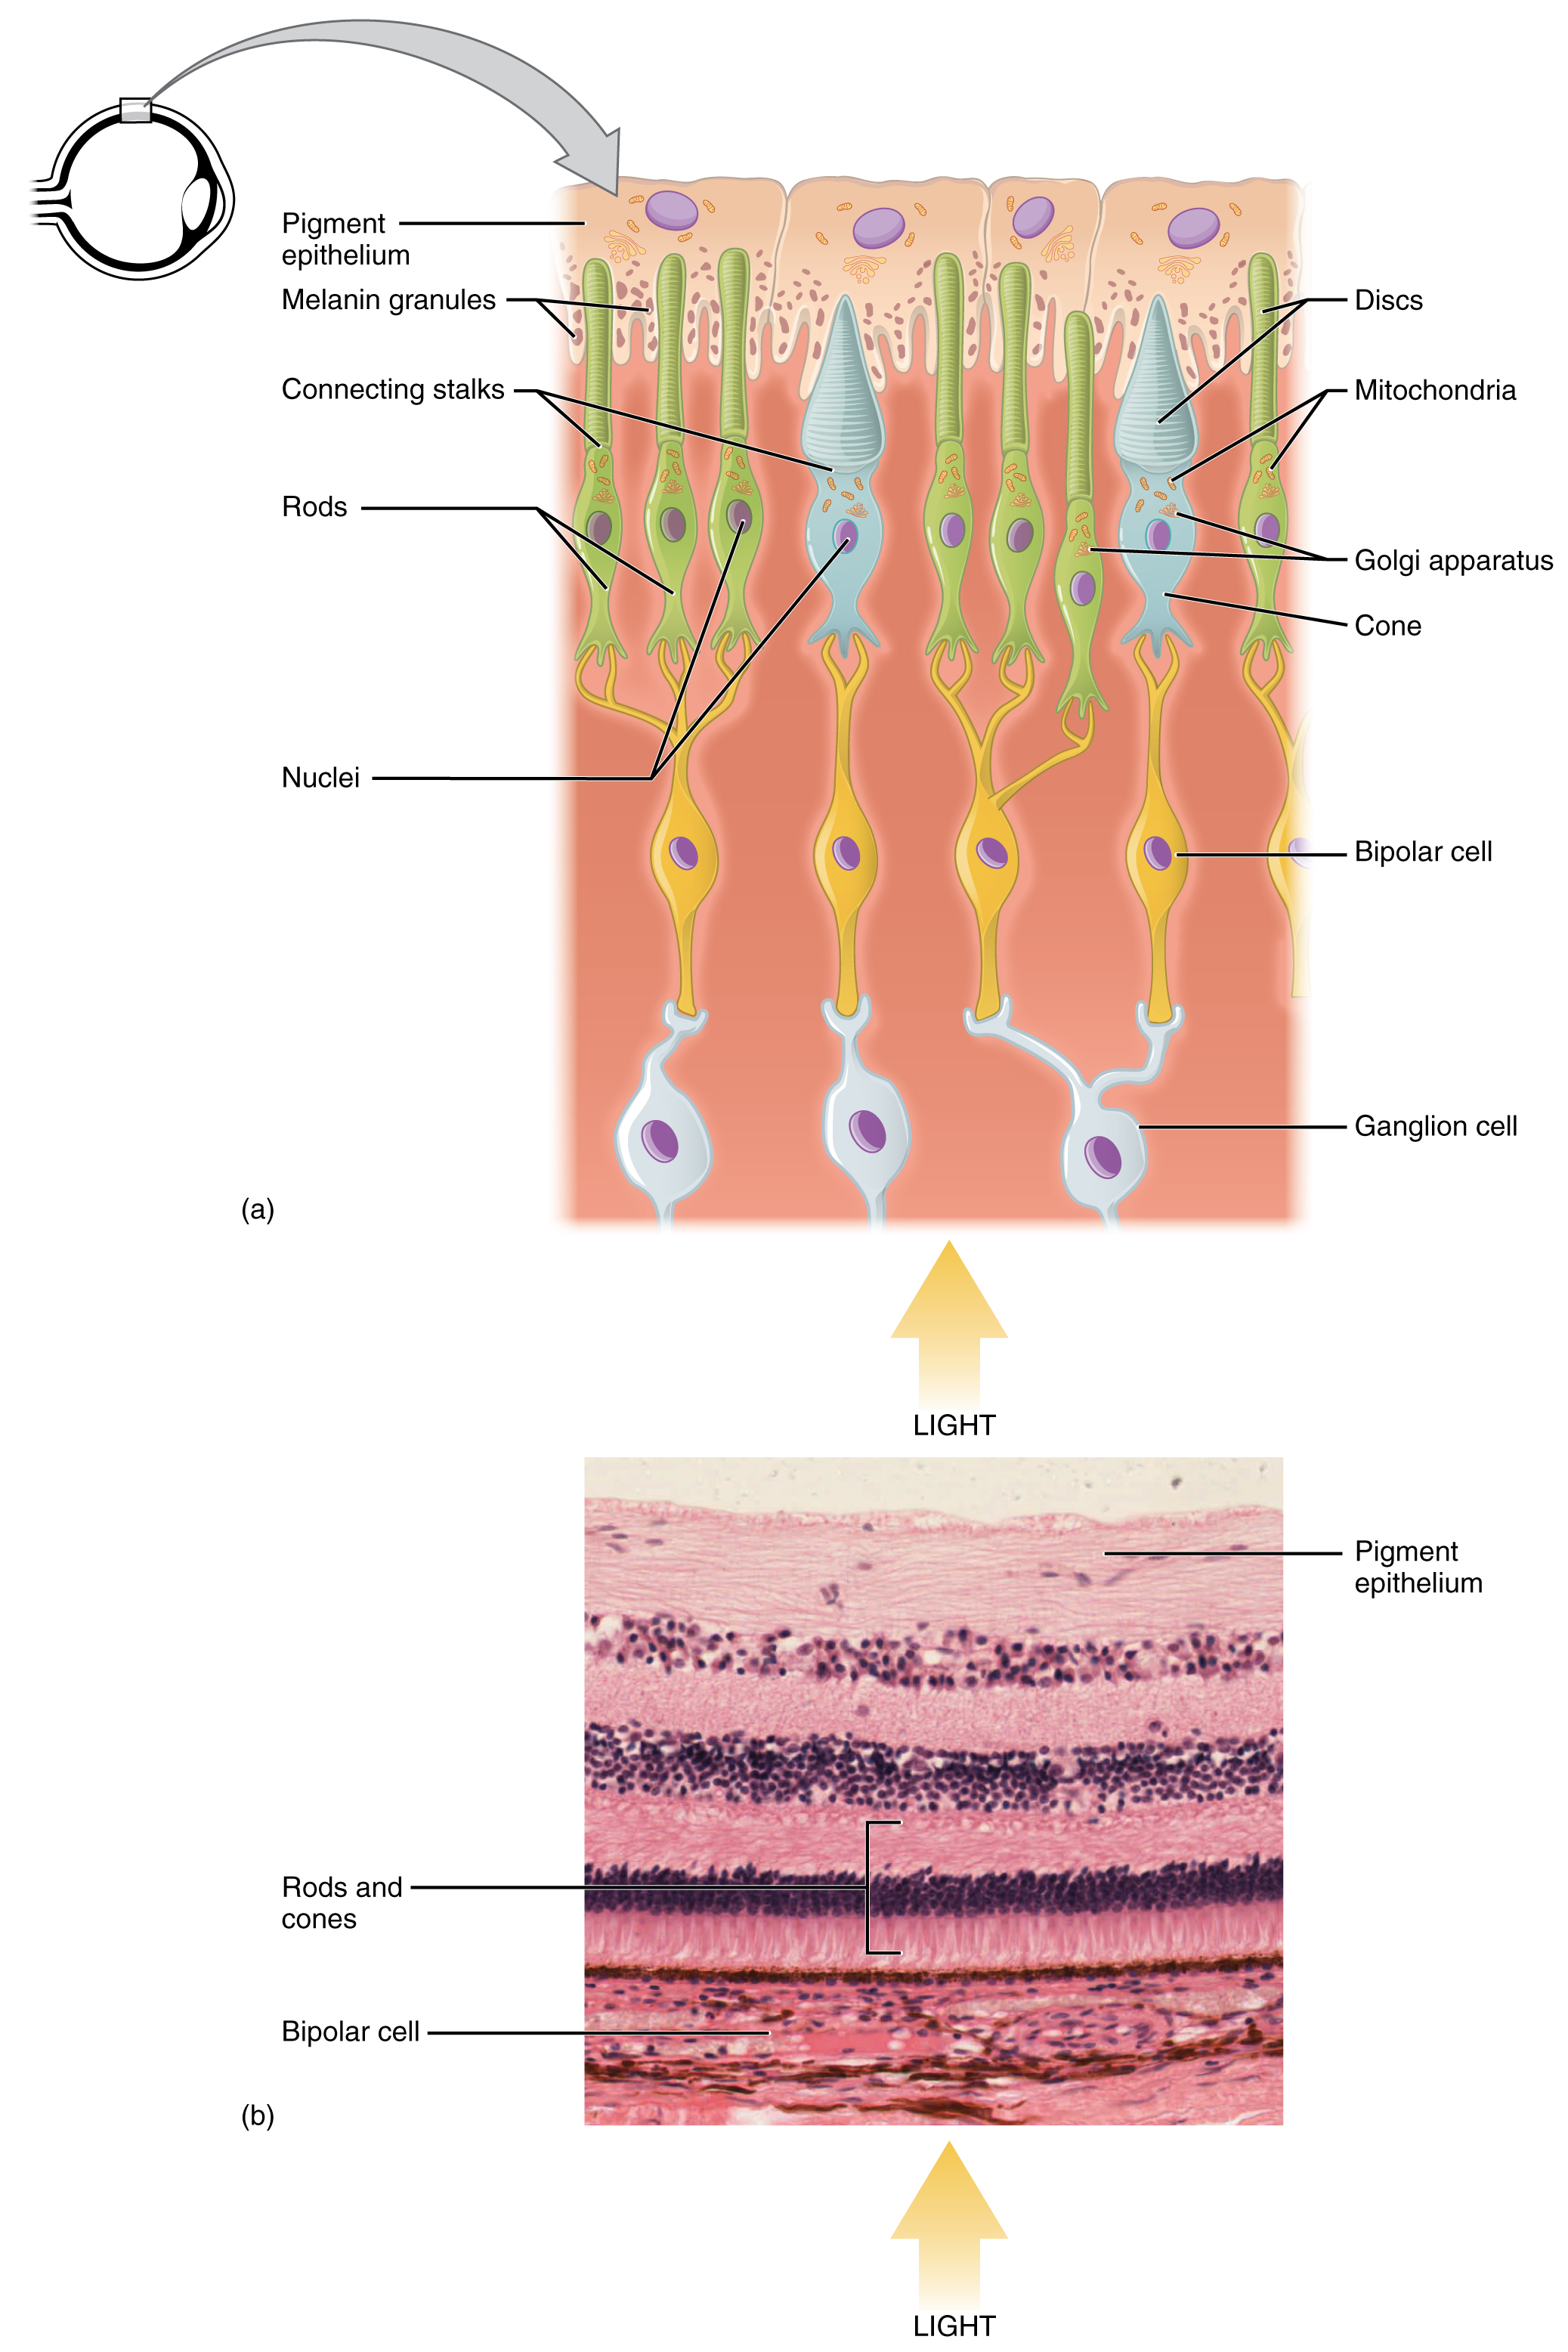 The Top Panel Shows The Cellular Structure Of The